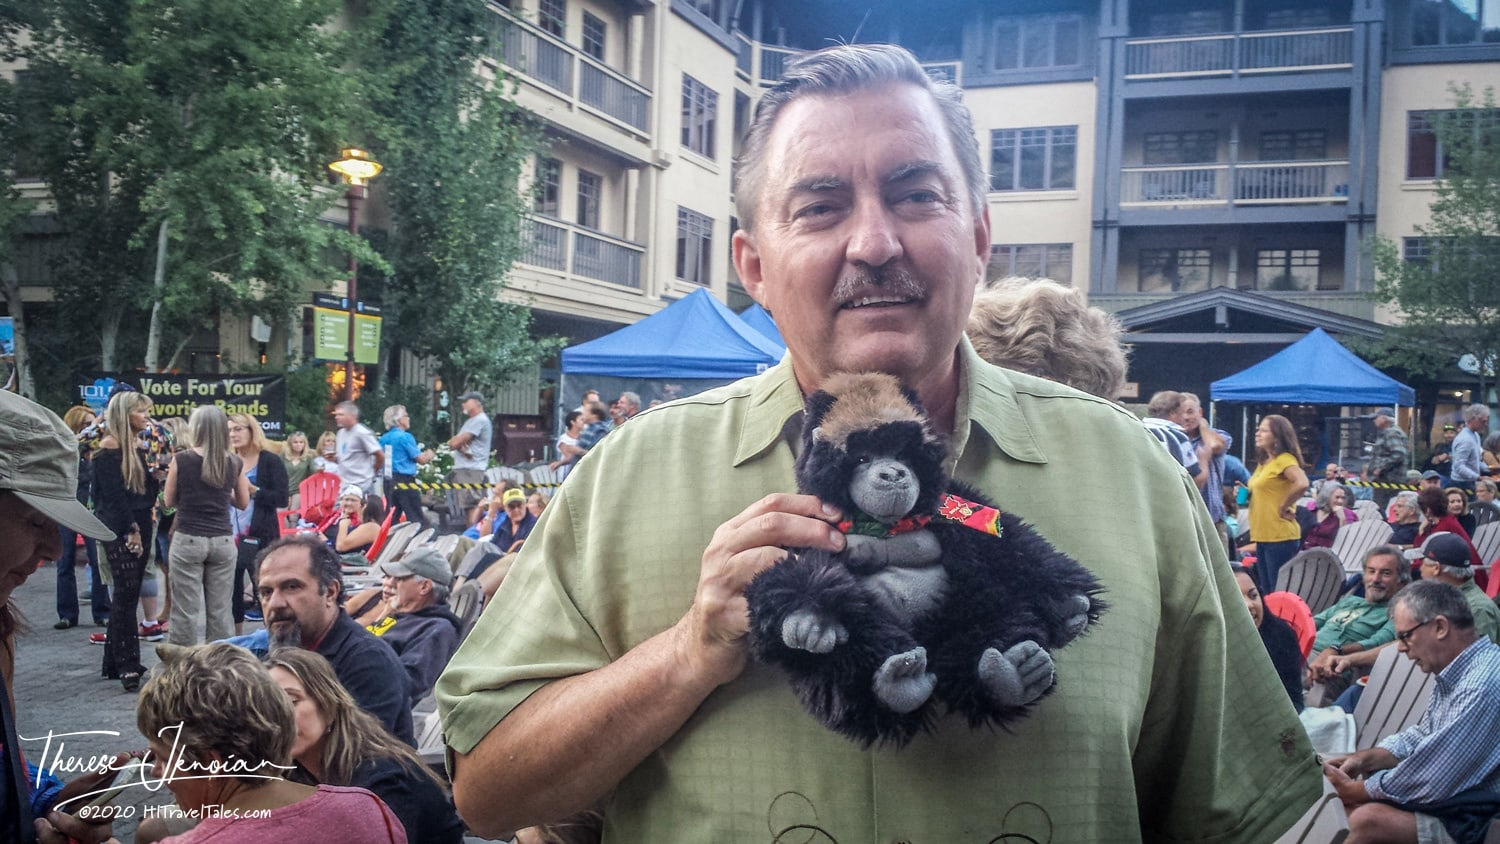 Charles Baty At With JoJo The Gorilla In Squaw Valley